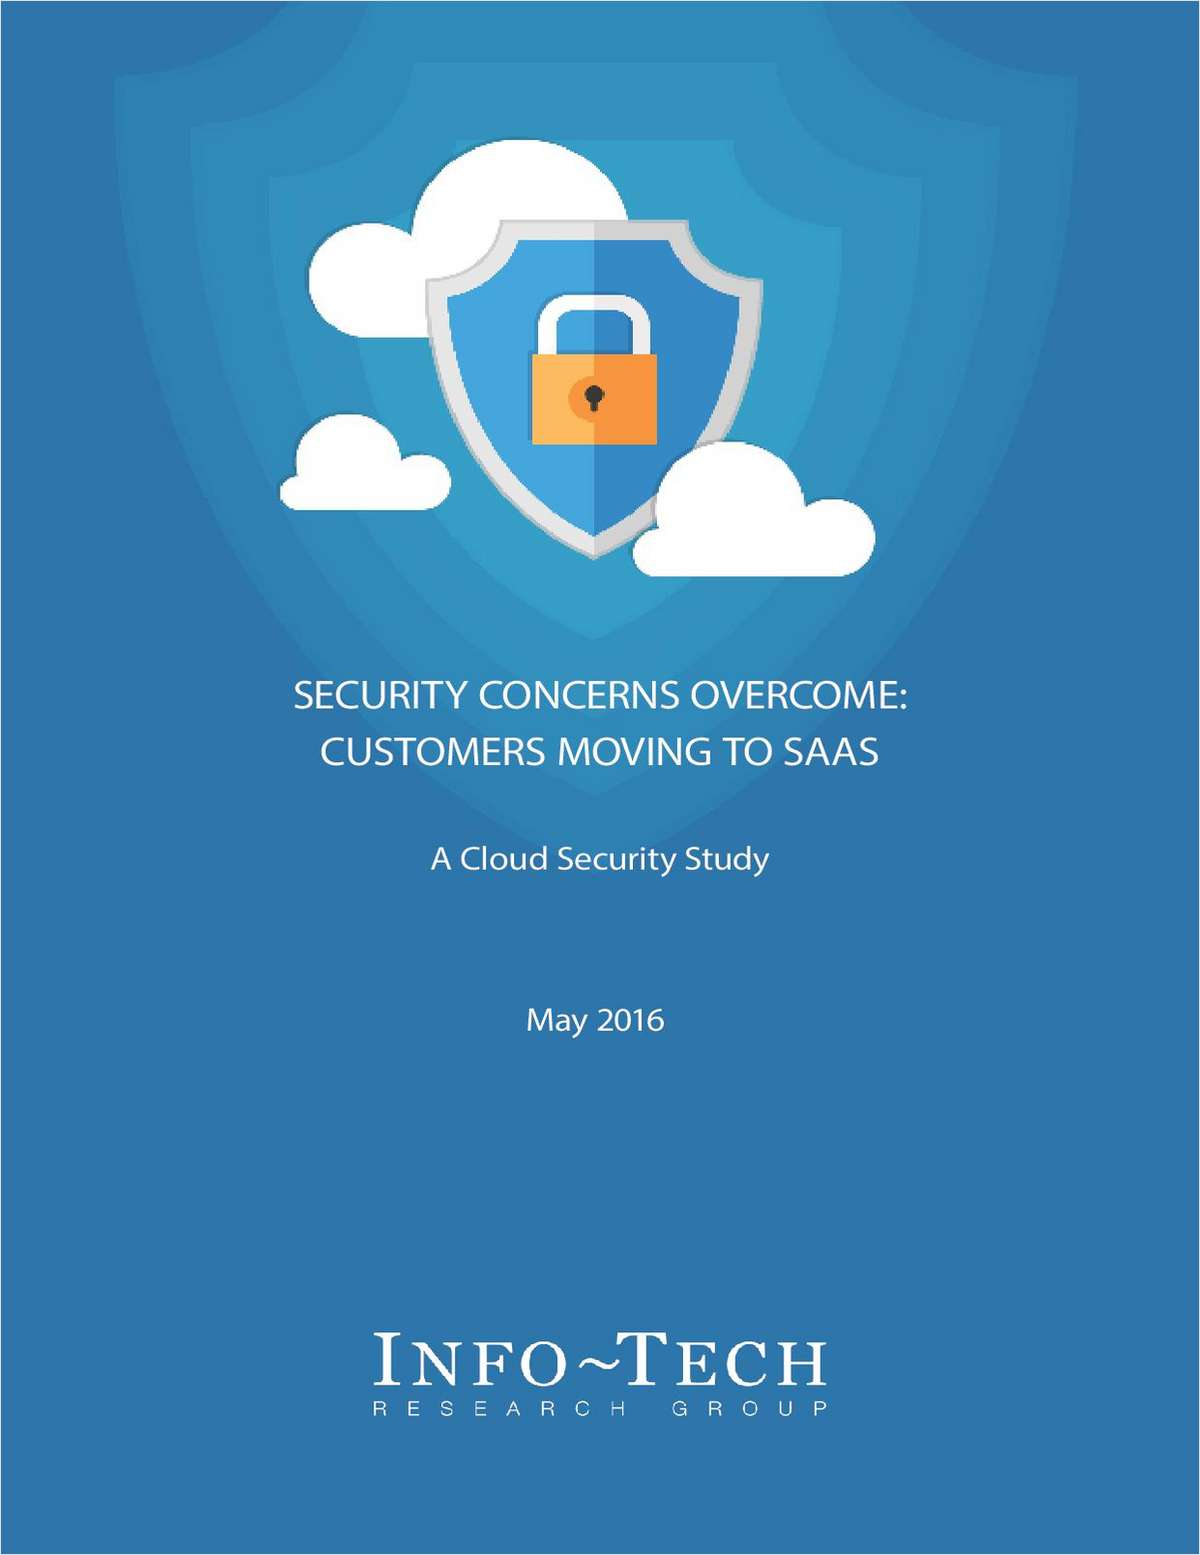 Security Concerns Overcome: Customers Moving to SaaS